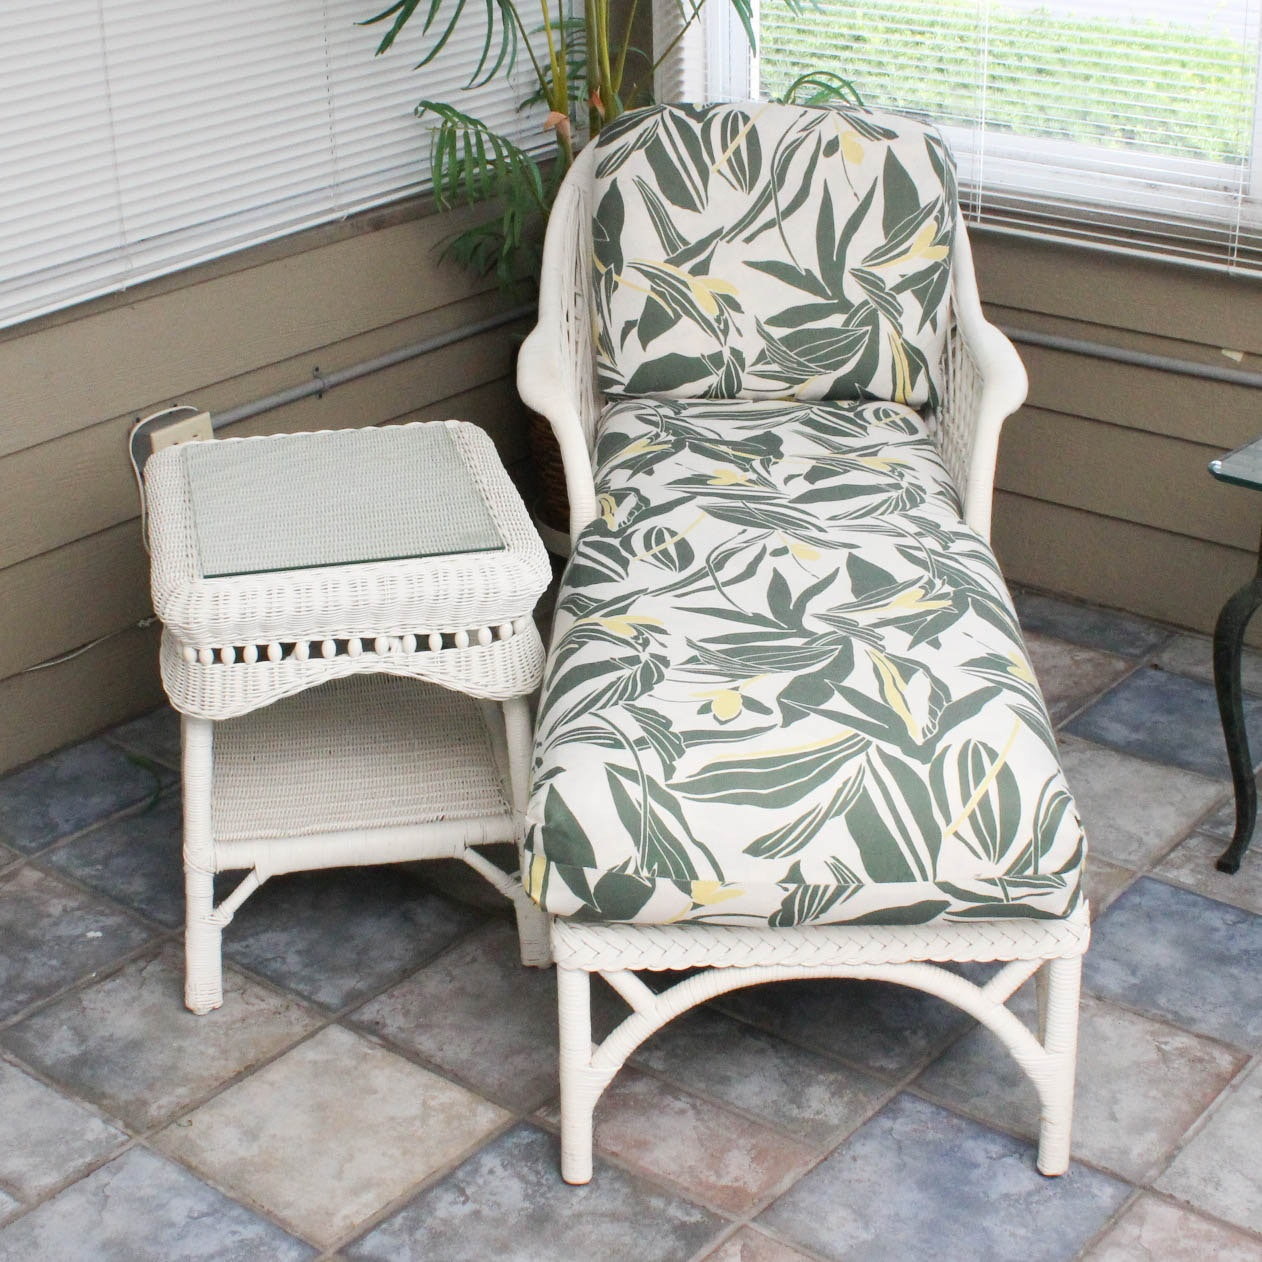 Wicker Chaise Lounge Chair and Side Table